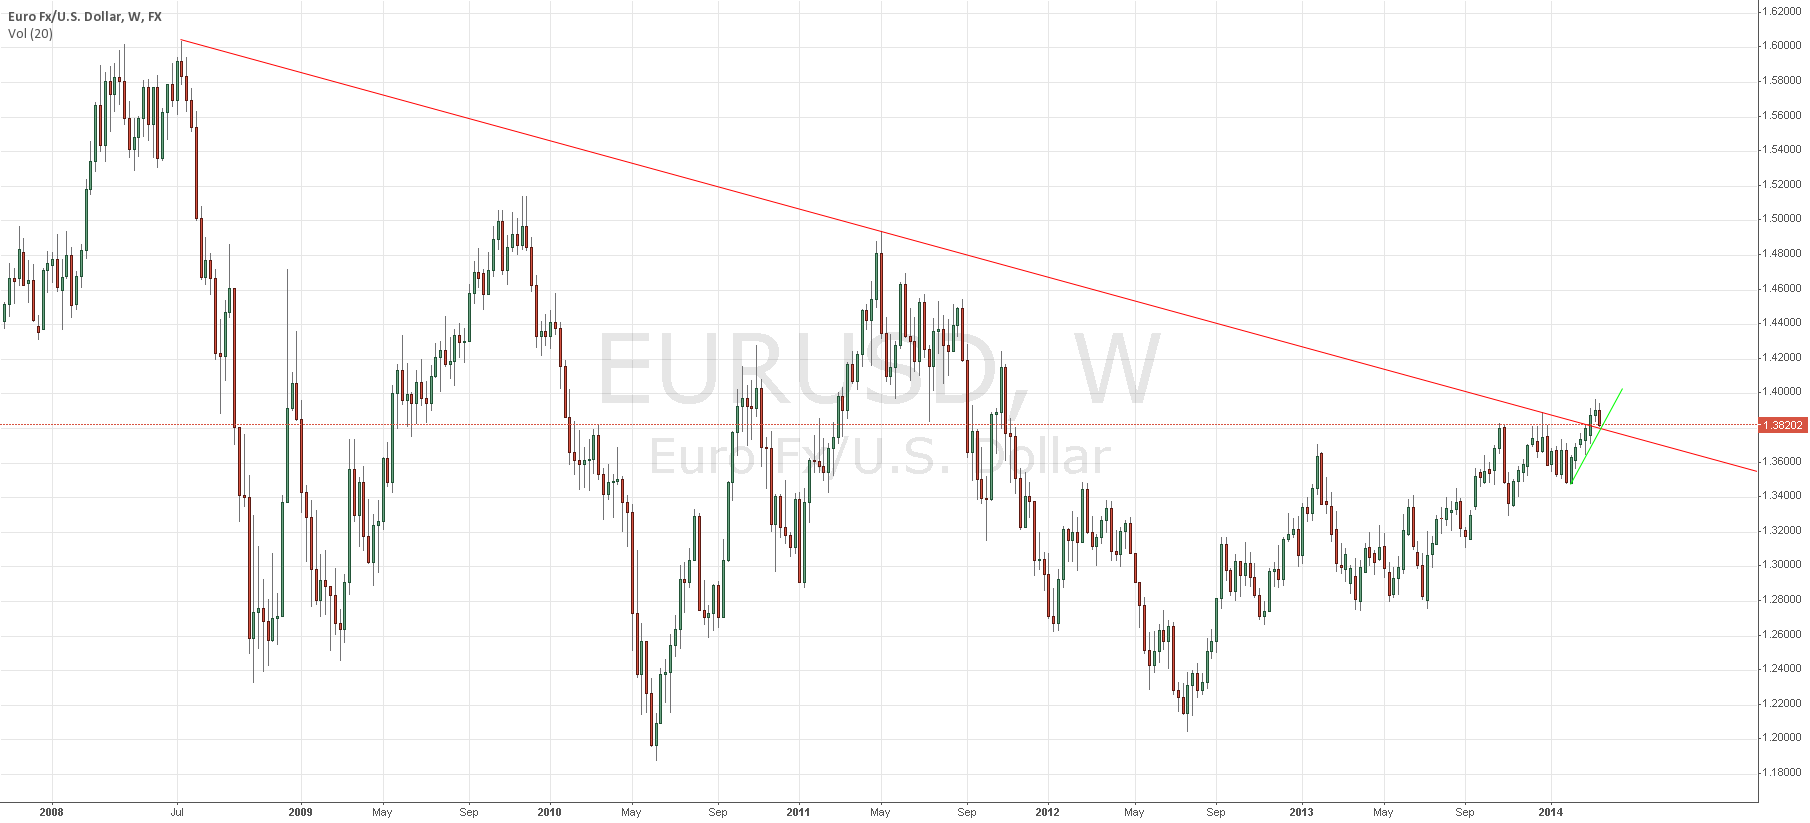 Low 1.38XX will decide if EUR/USD had a fake breakout or not